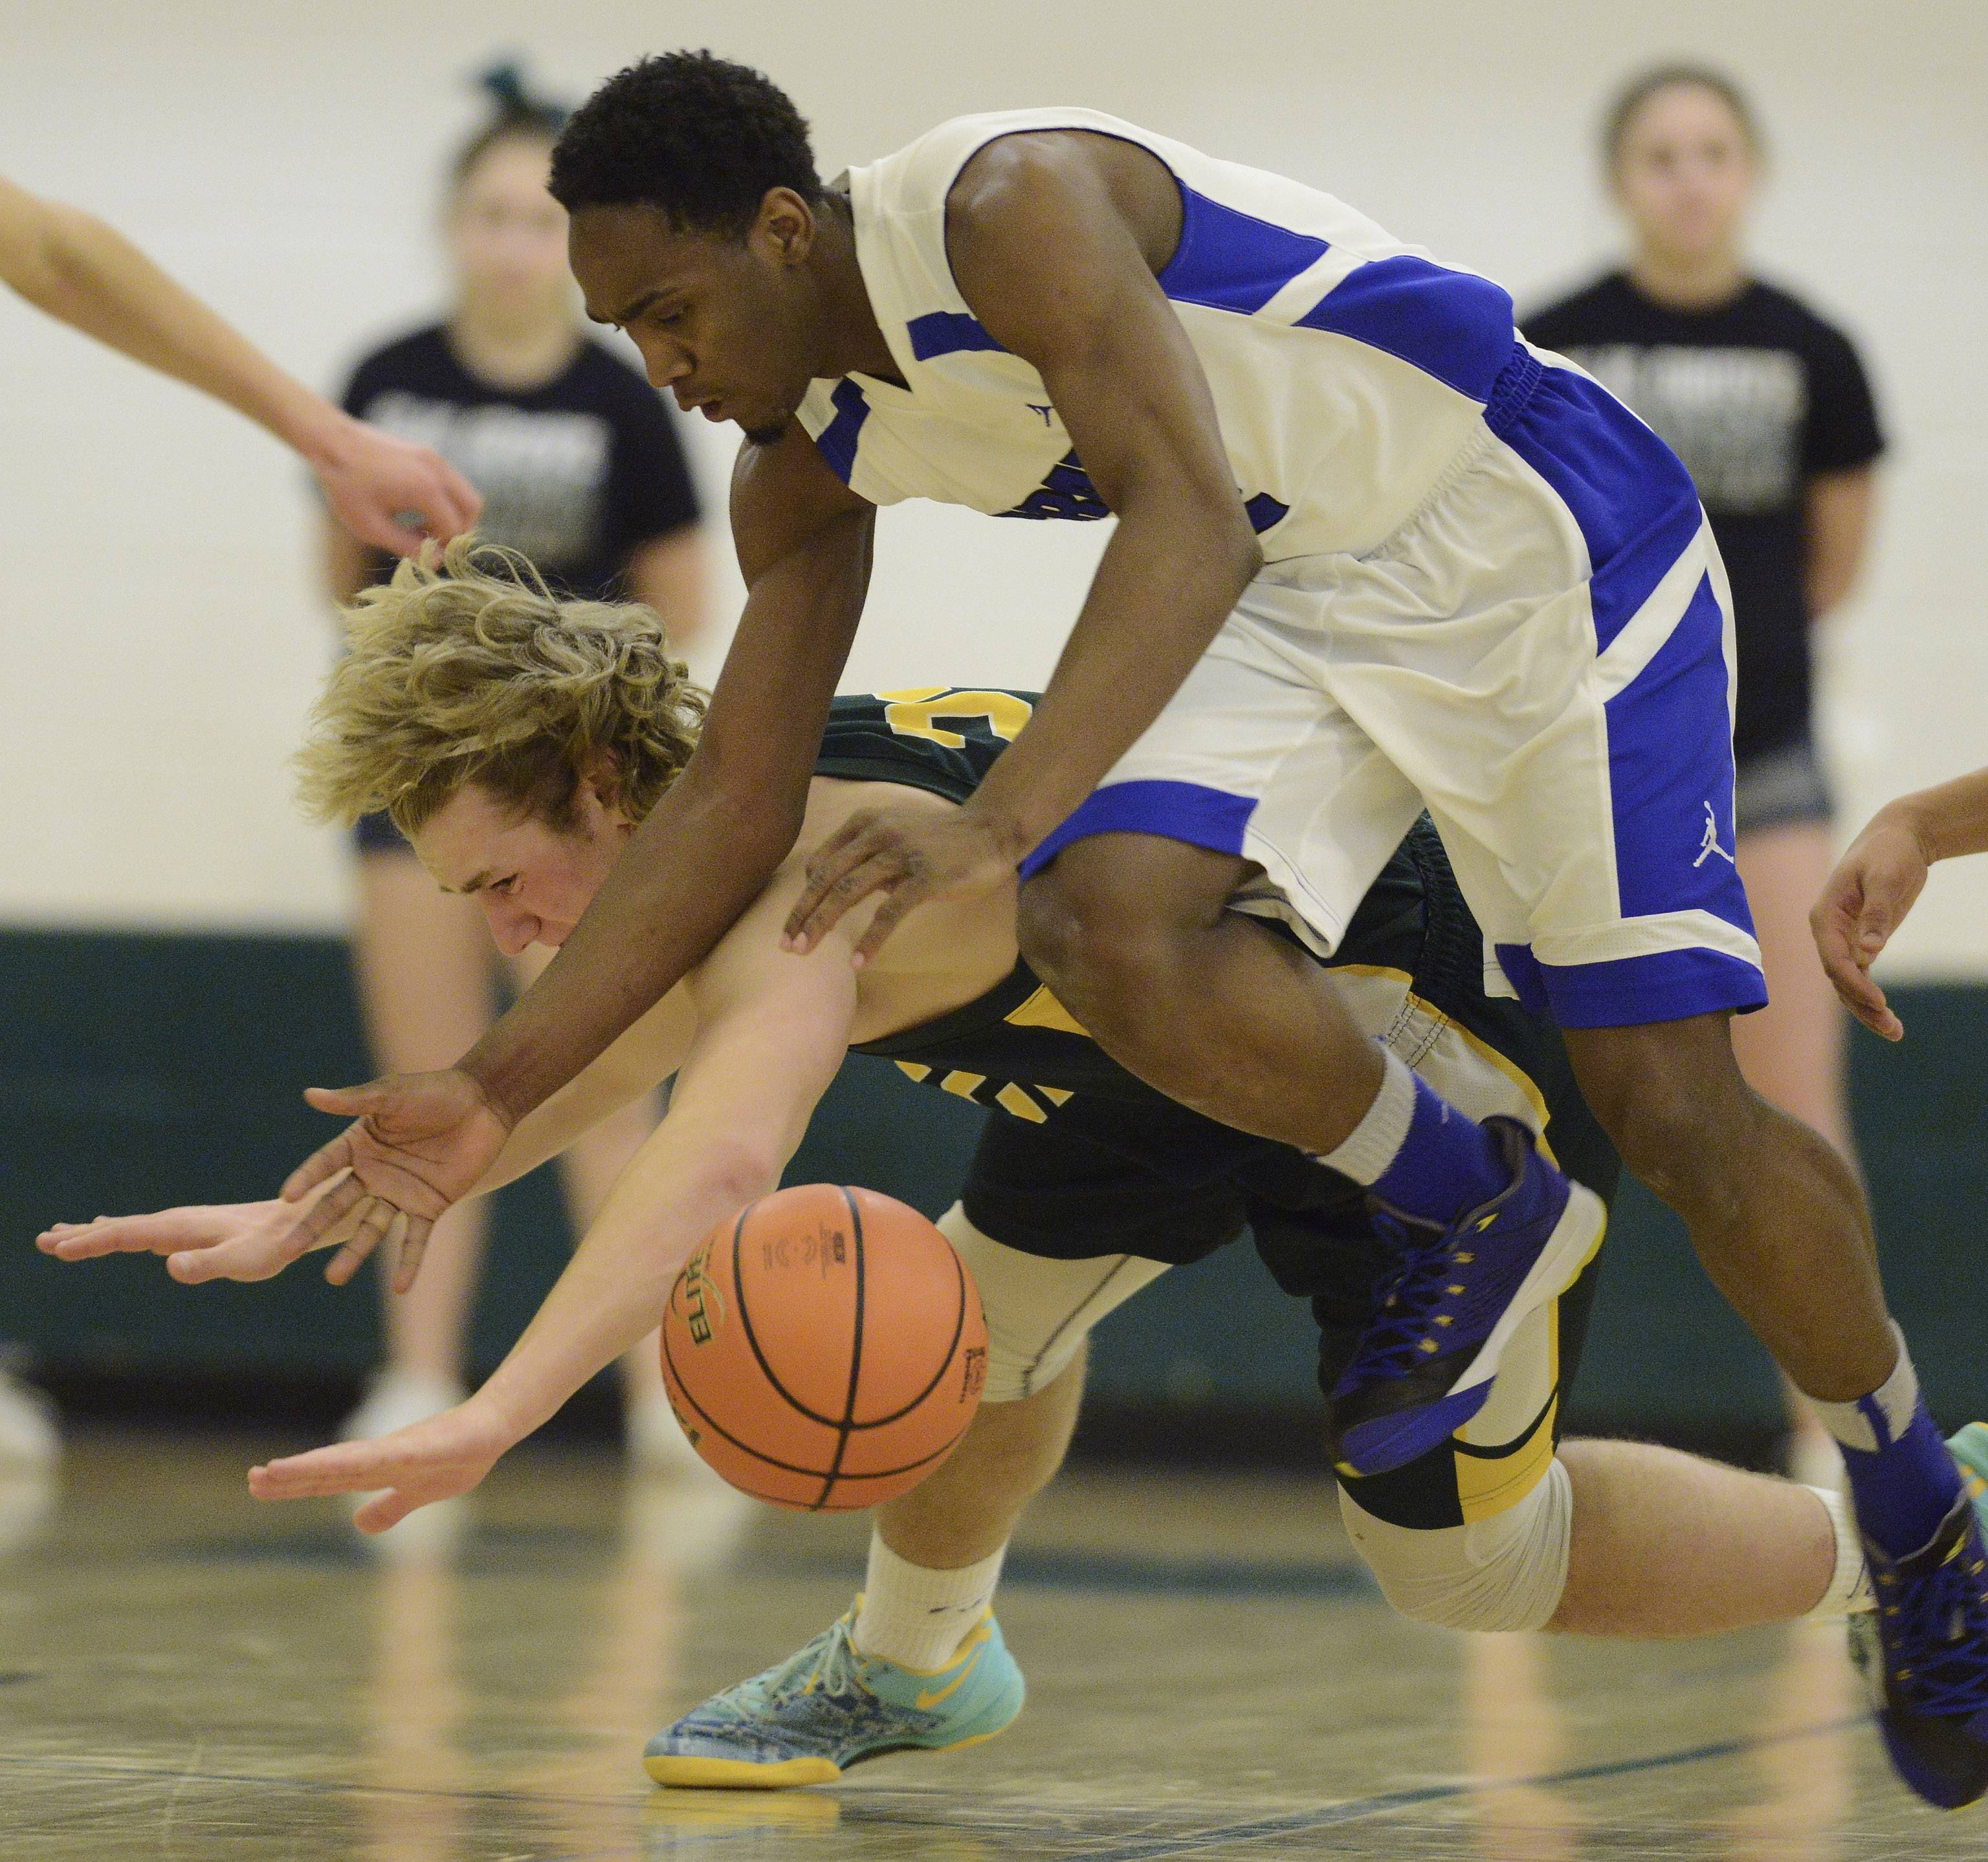 Elk Grove's Adam O'Malley, left, and Proviso East's Alano Span make contact while trying to control a loose ball during Tuesday's regional semifinal at Elk Grove High School.